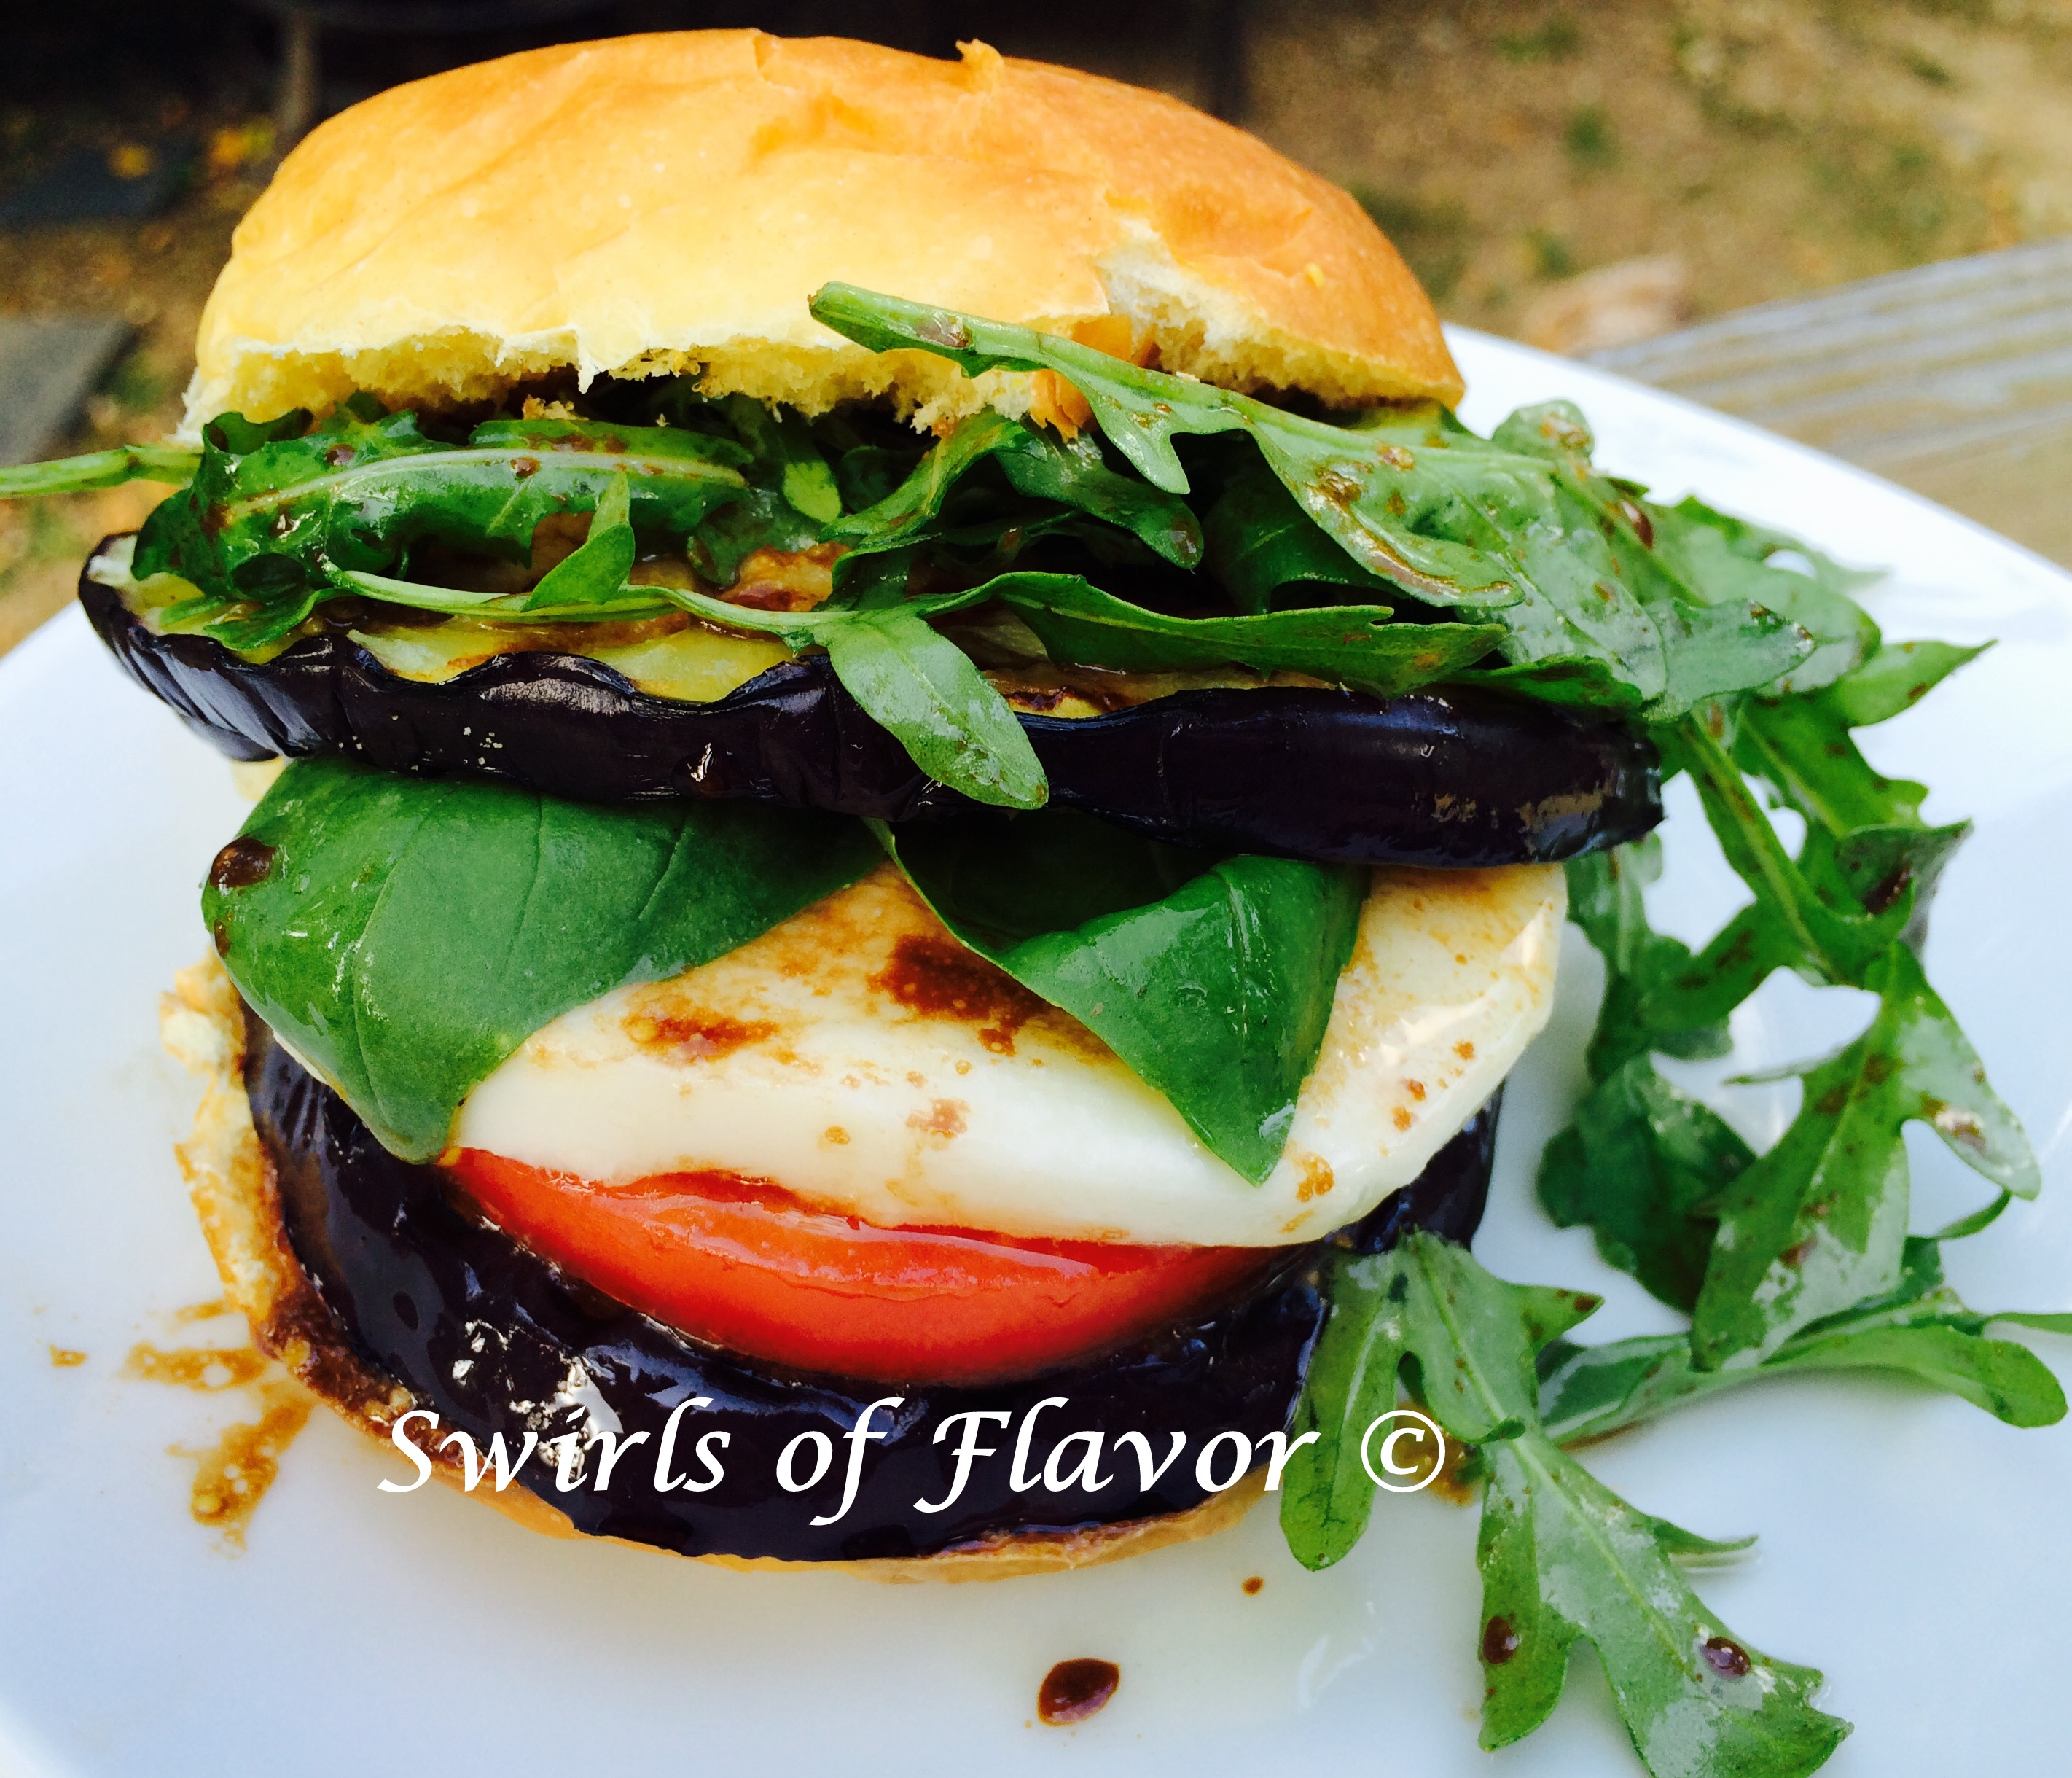 Eggplant Caprese Sandwich with fresh mozzarella, arugula and balsamic vinaigrette